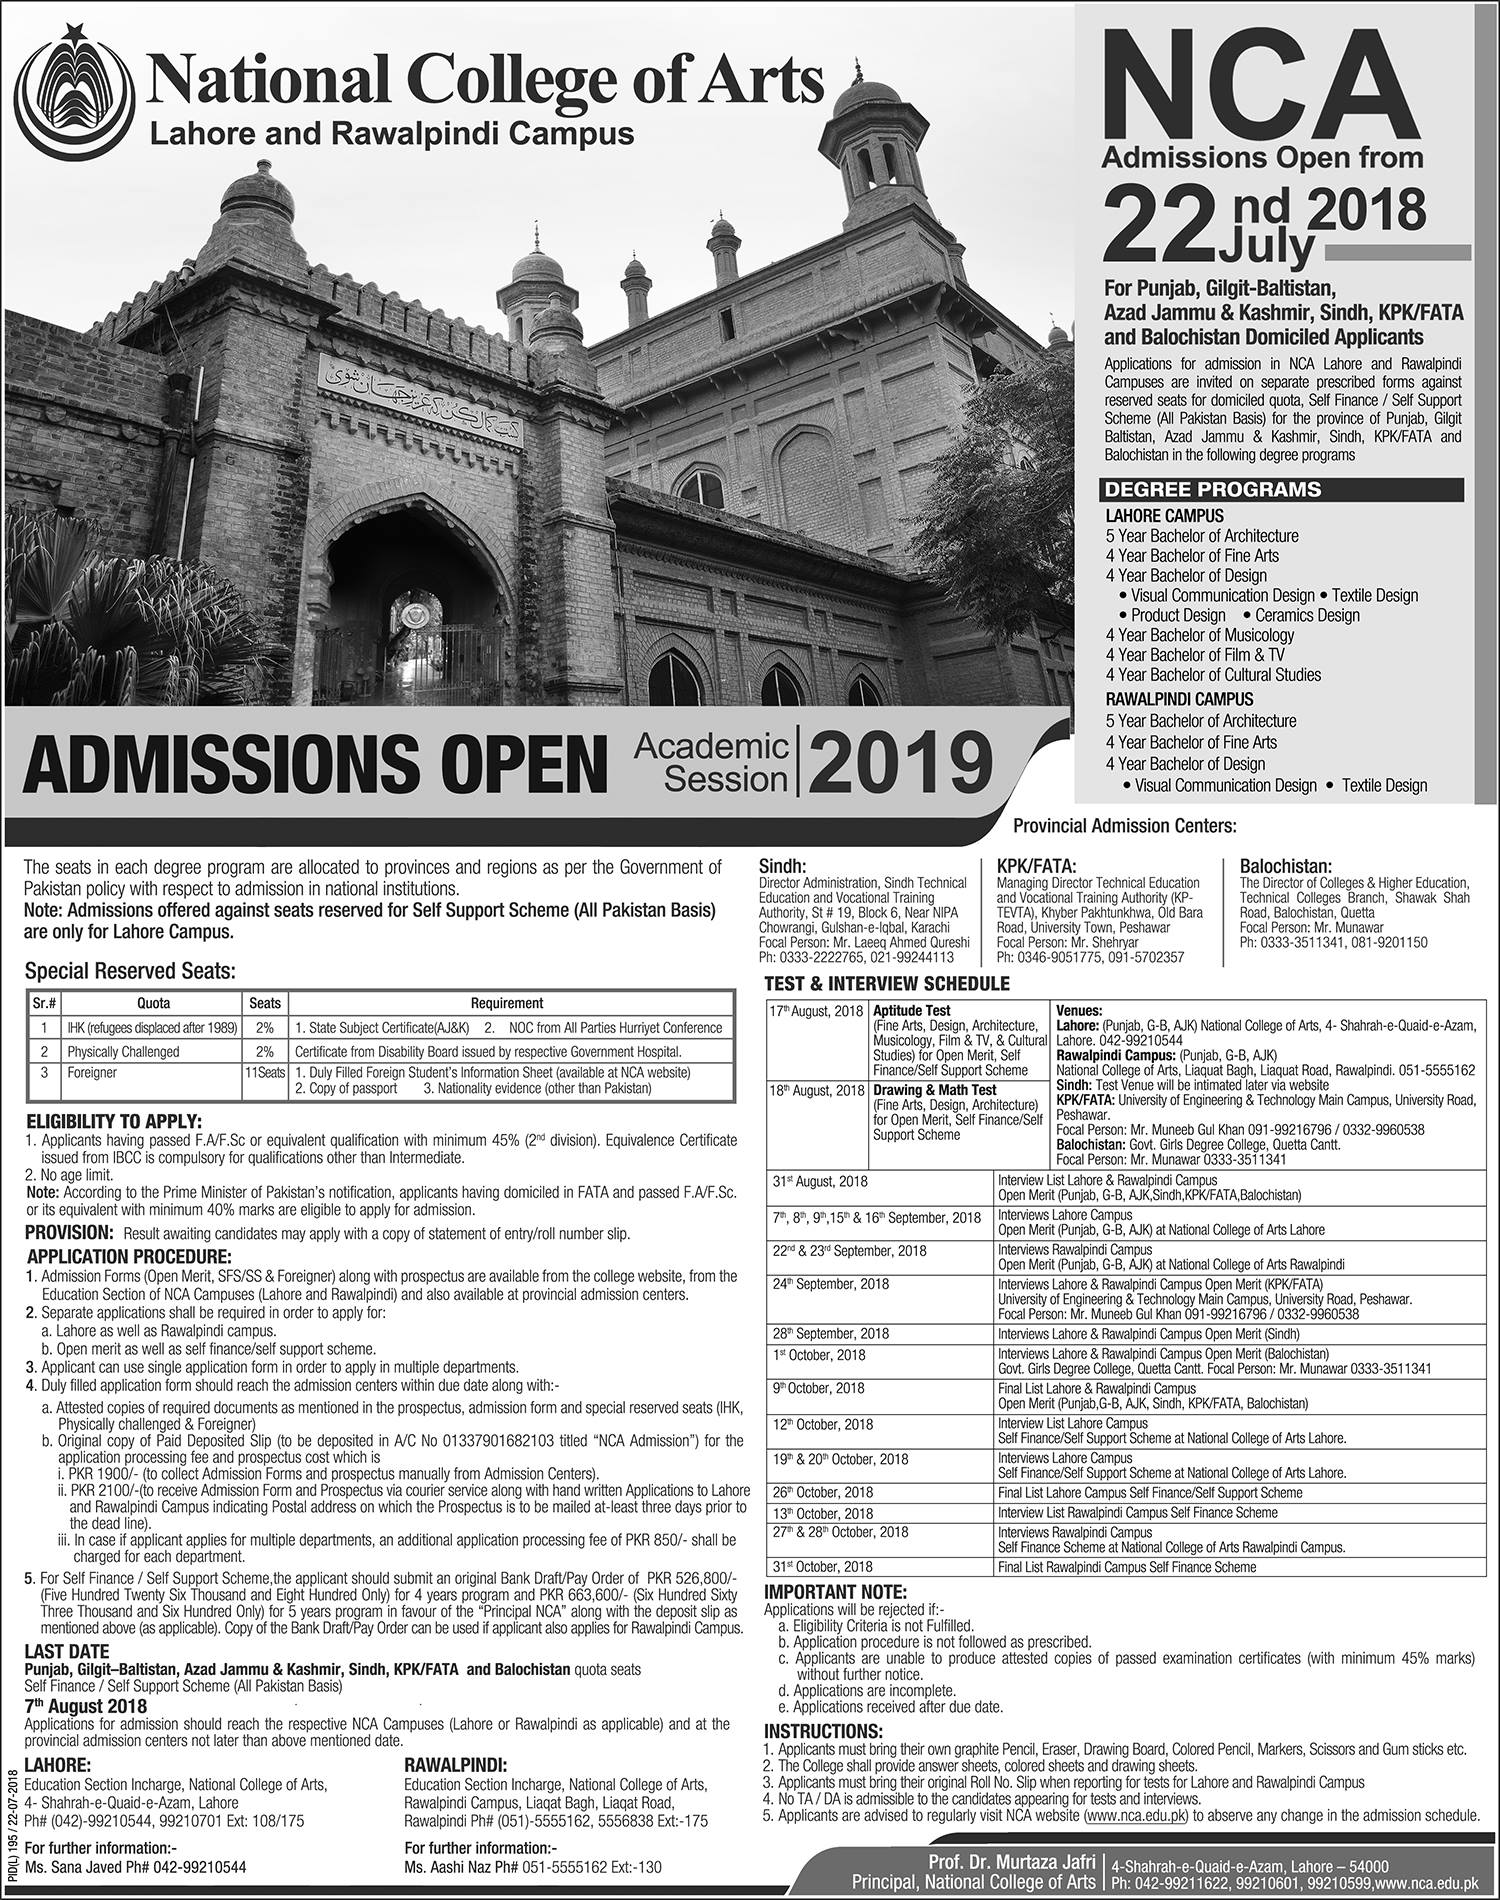 National College of Arts (NCA) Admissions 2018